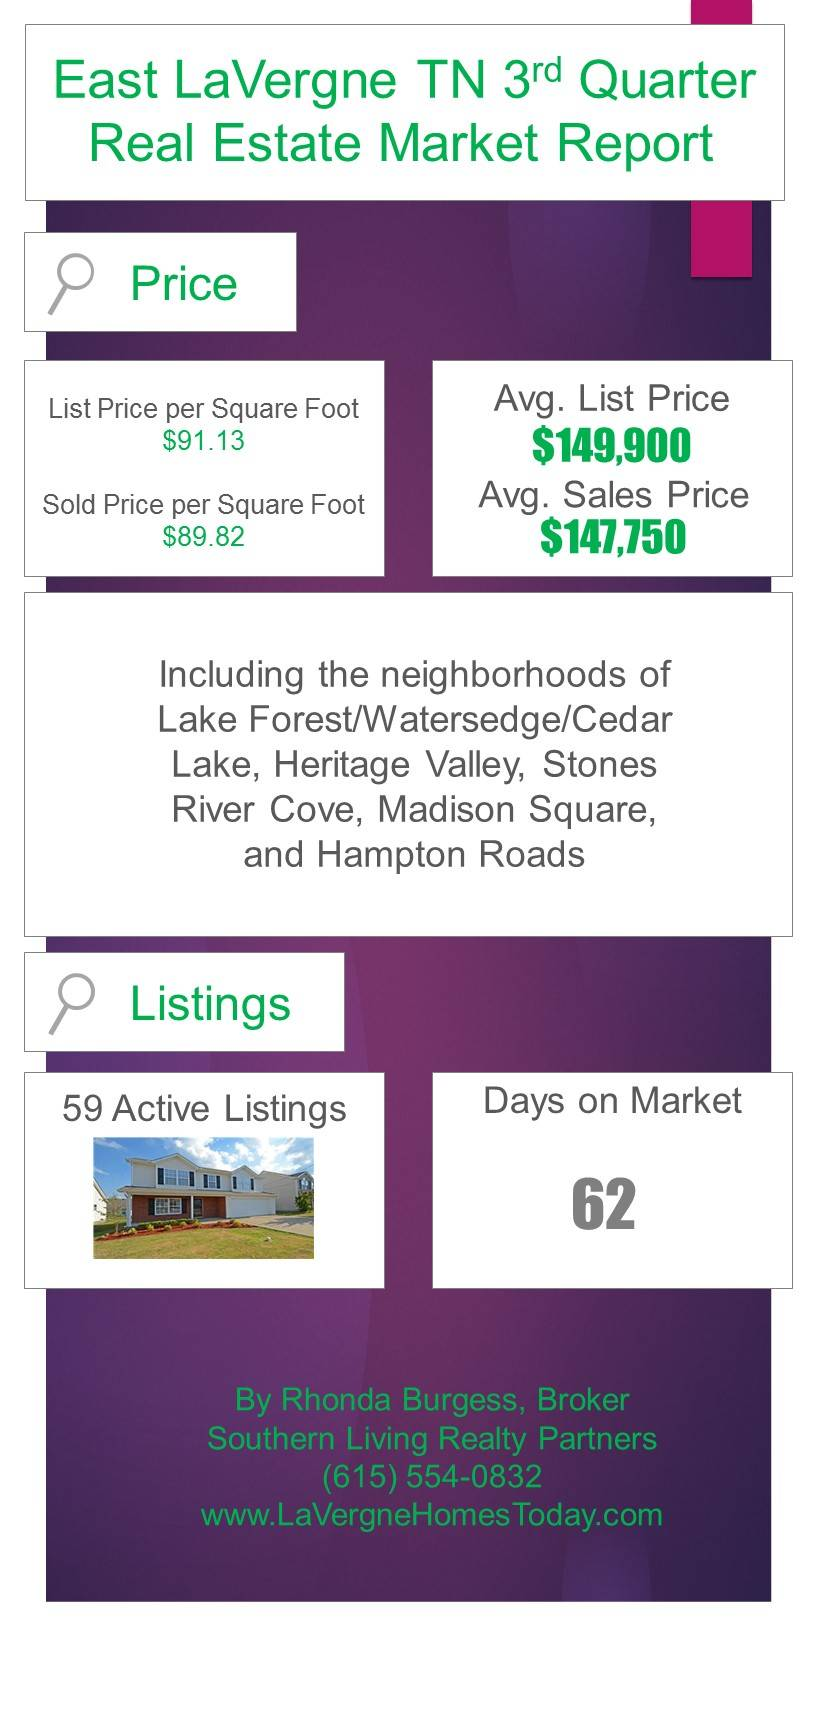 East LaVergne TN 3rd Quarter Market Report